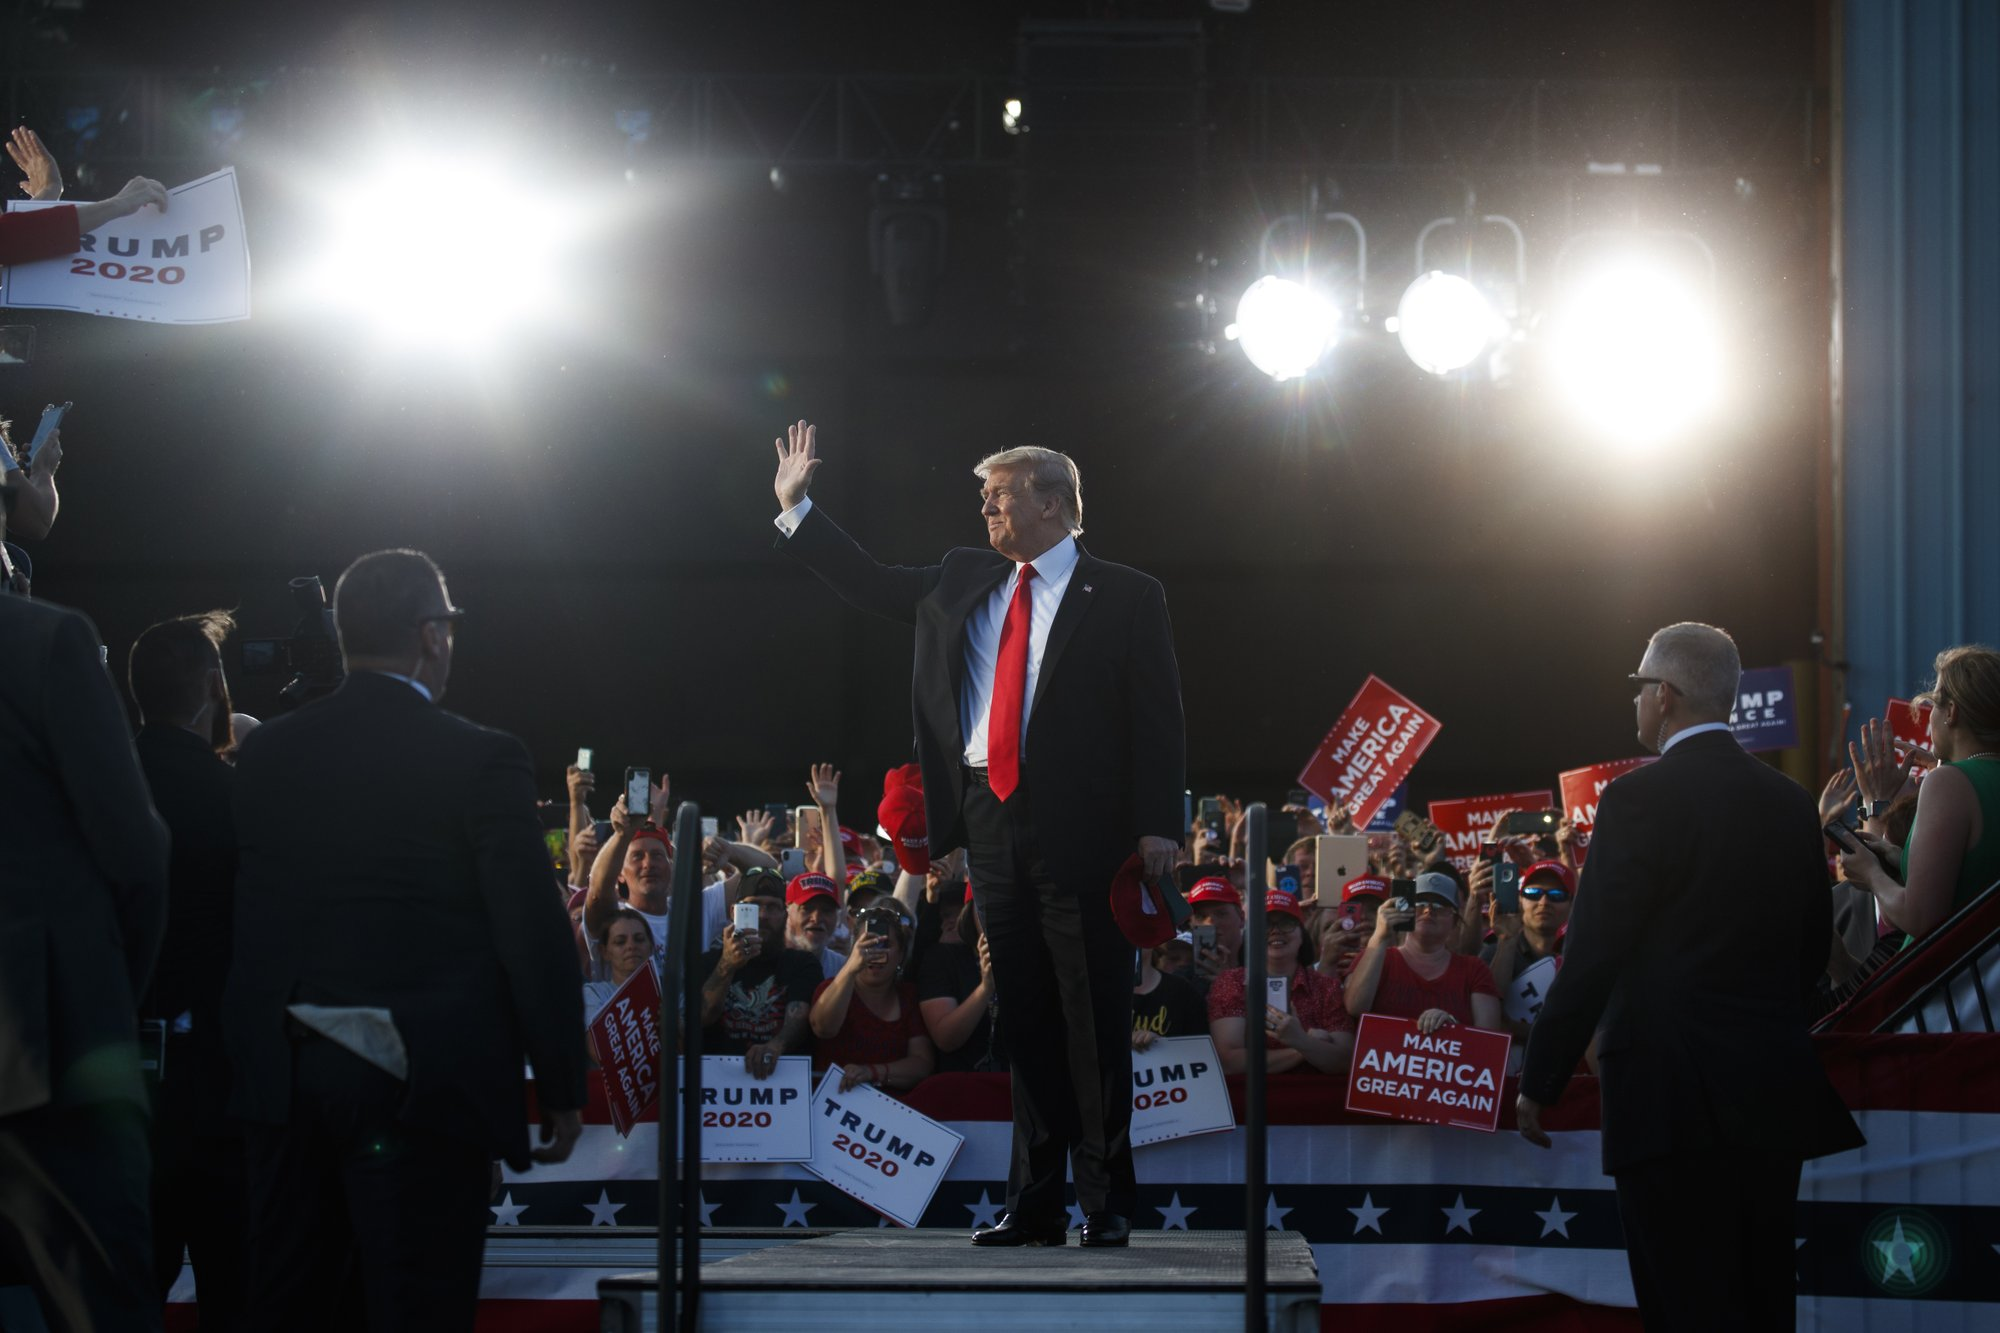 In Pennsylvania, Trump touts 2020 chances, swipes at Biden